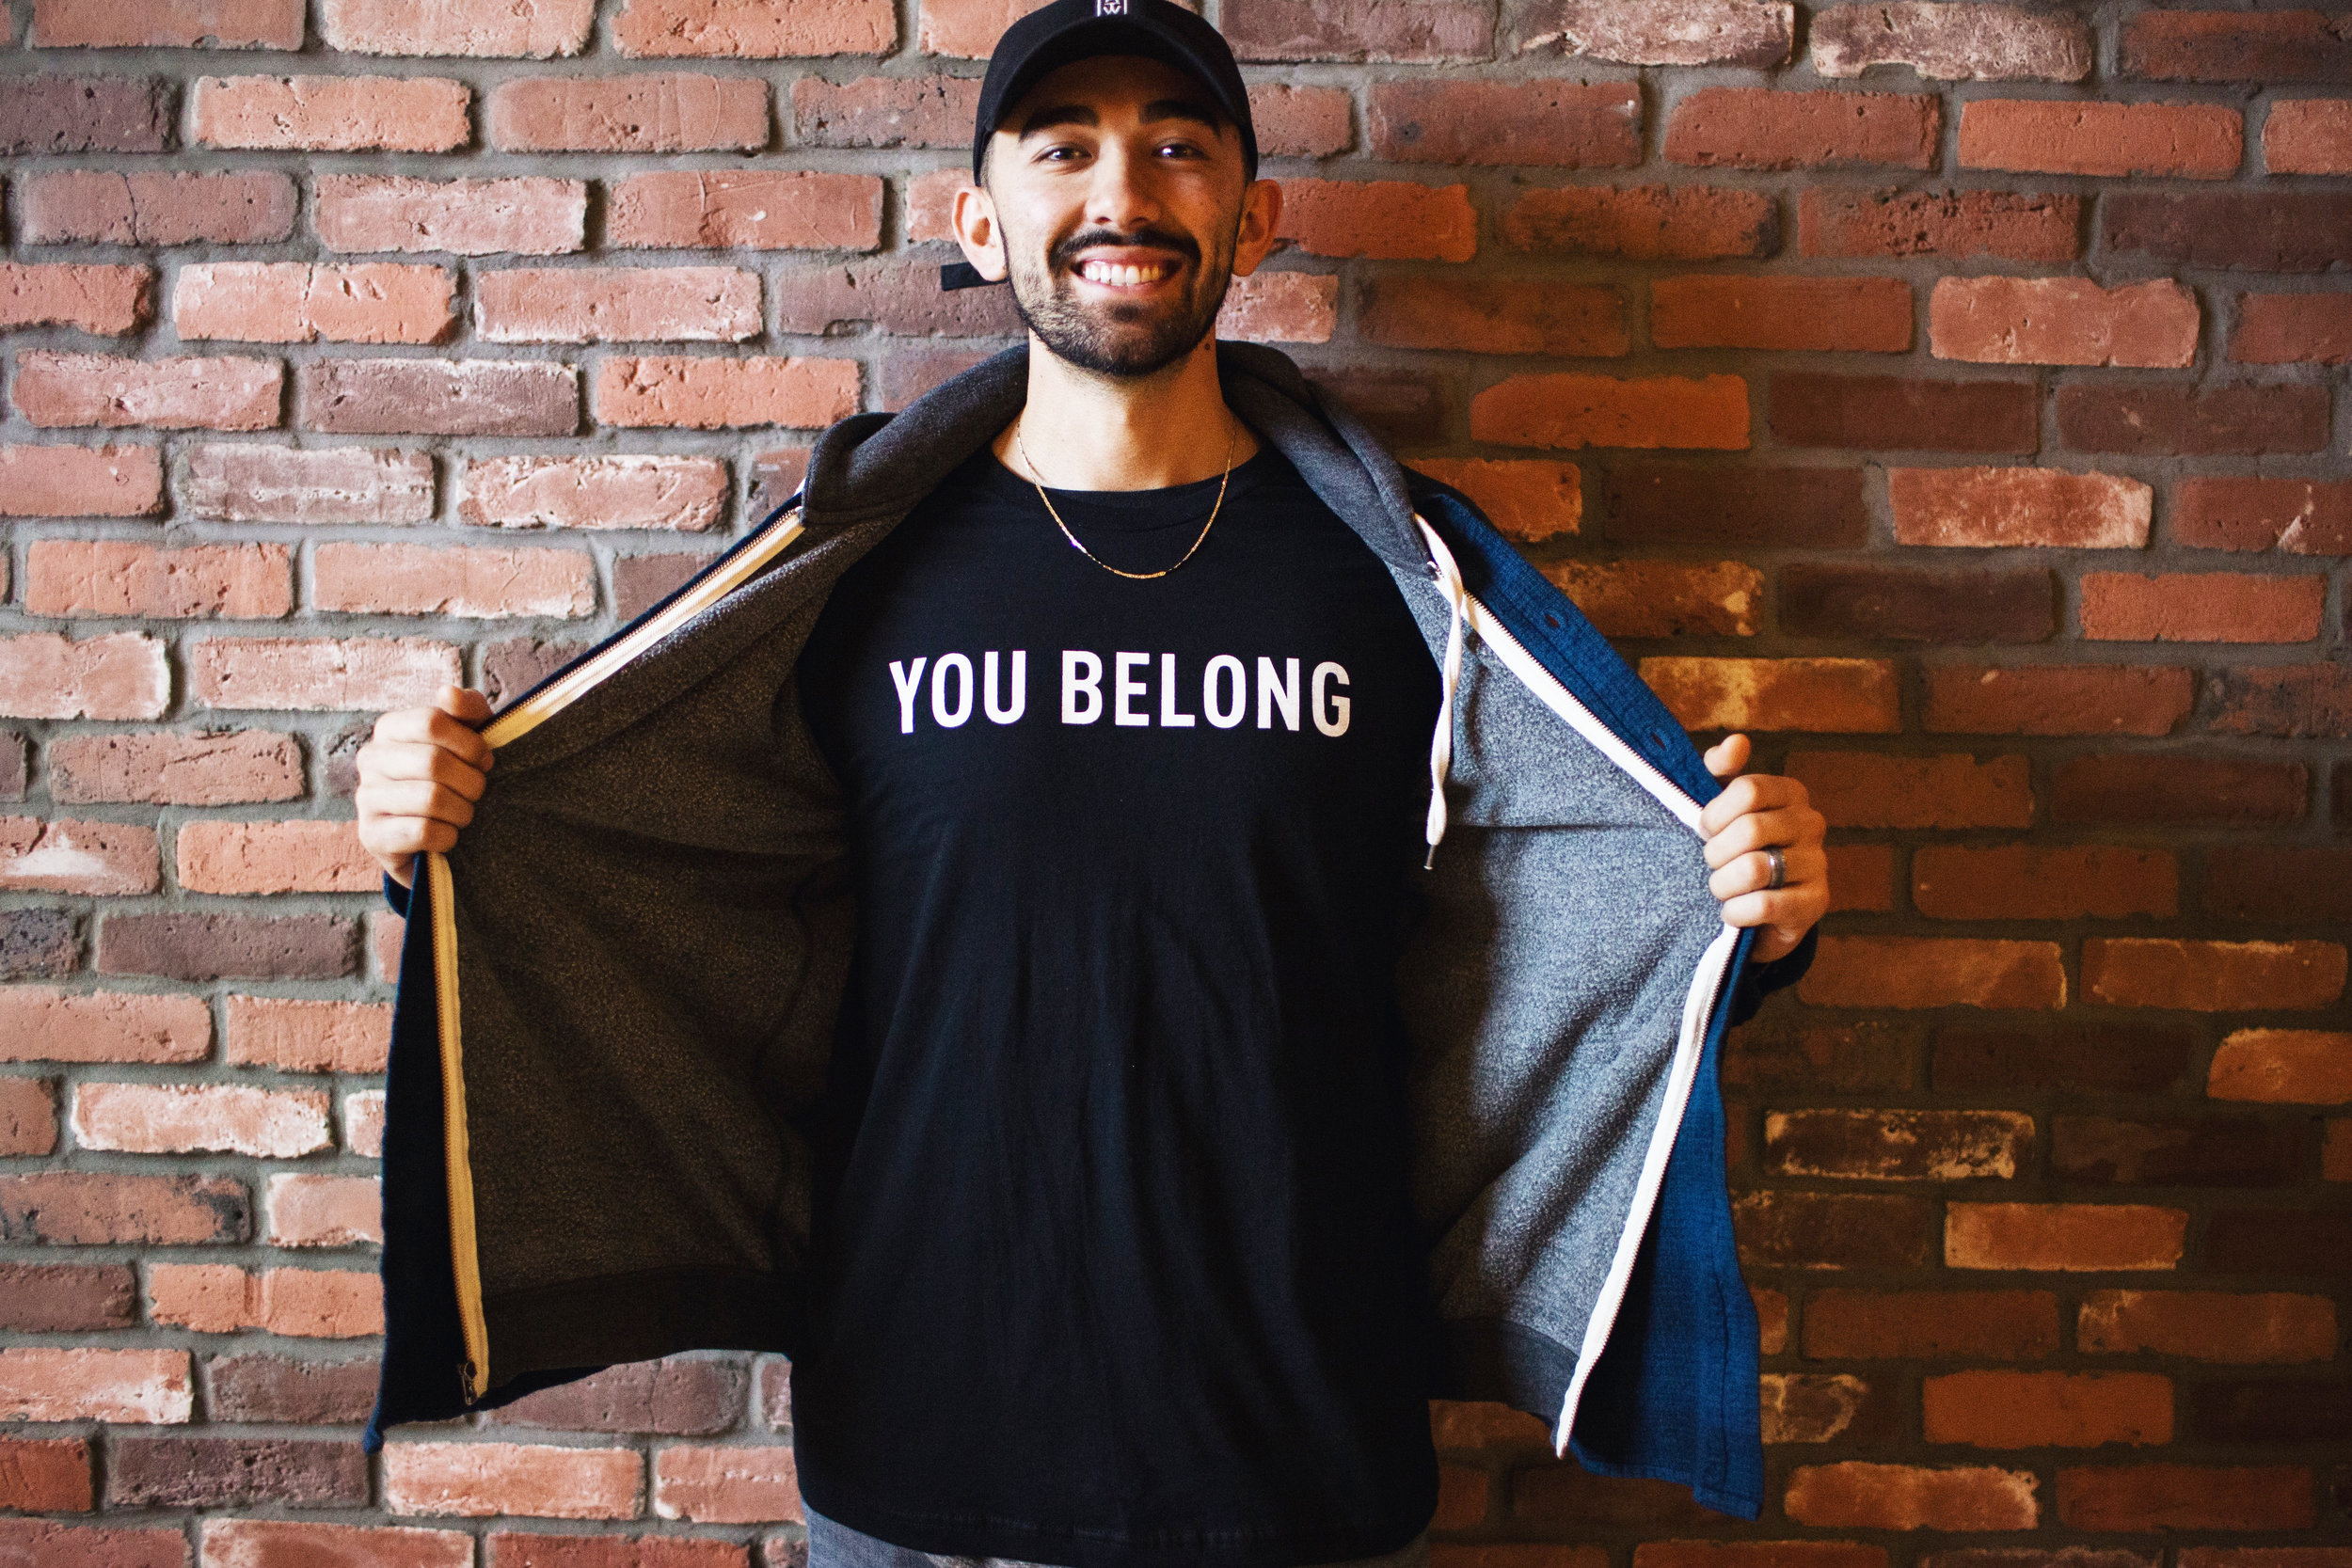 YOU BELONG - We are an inclusive